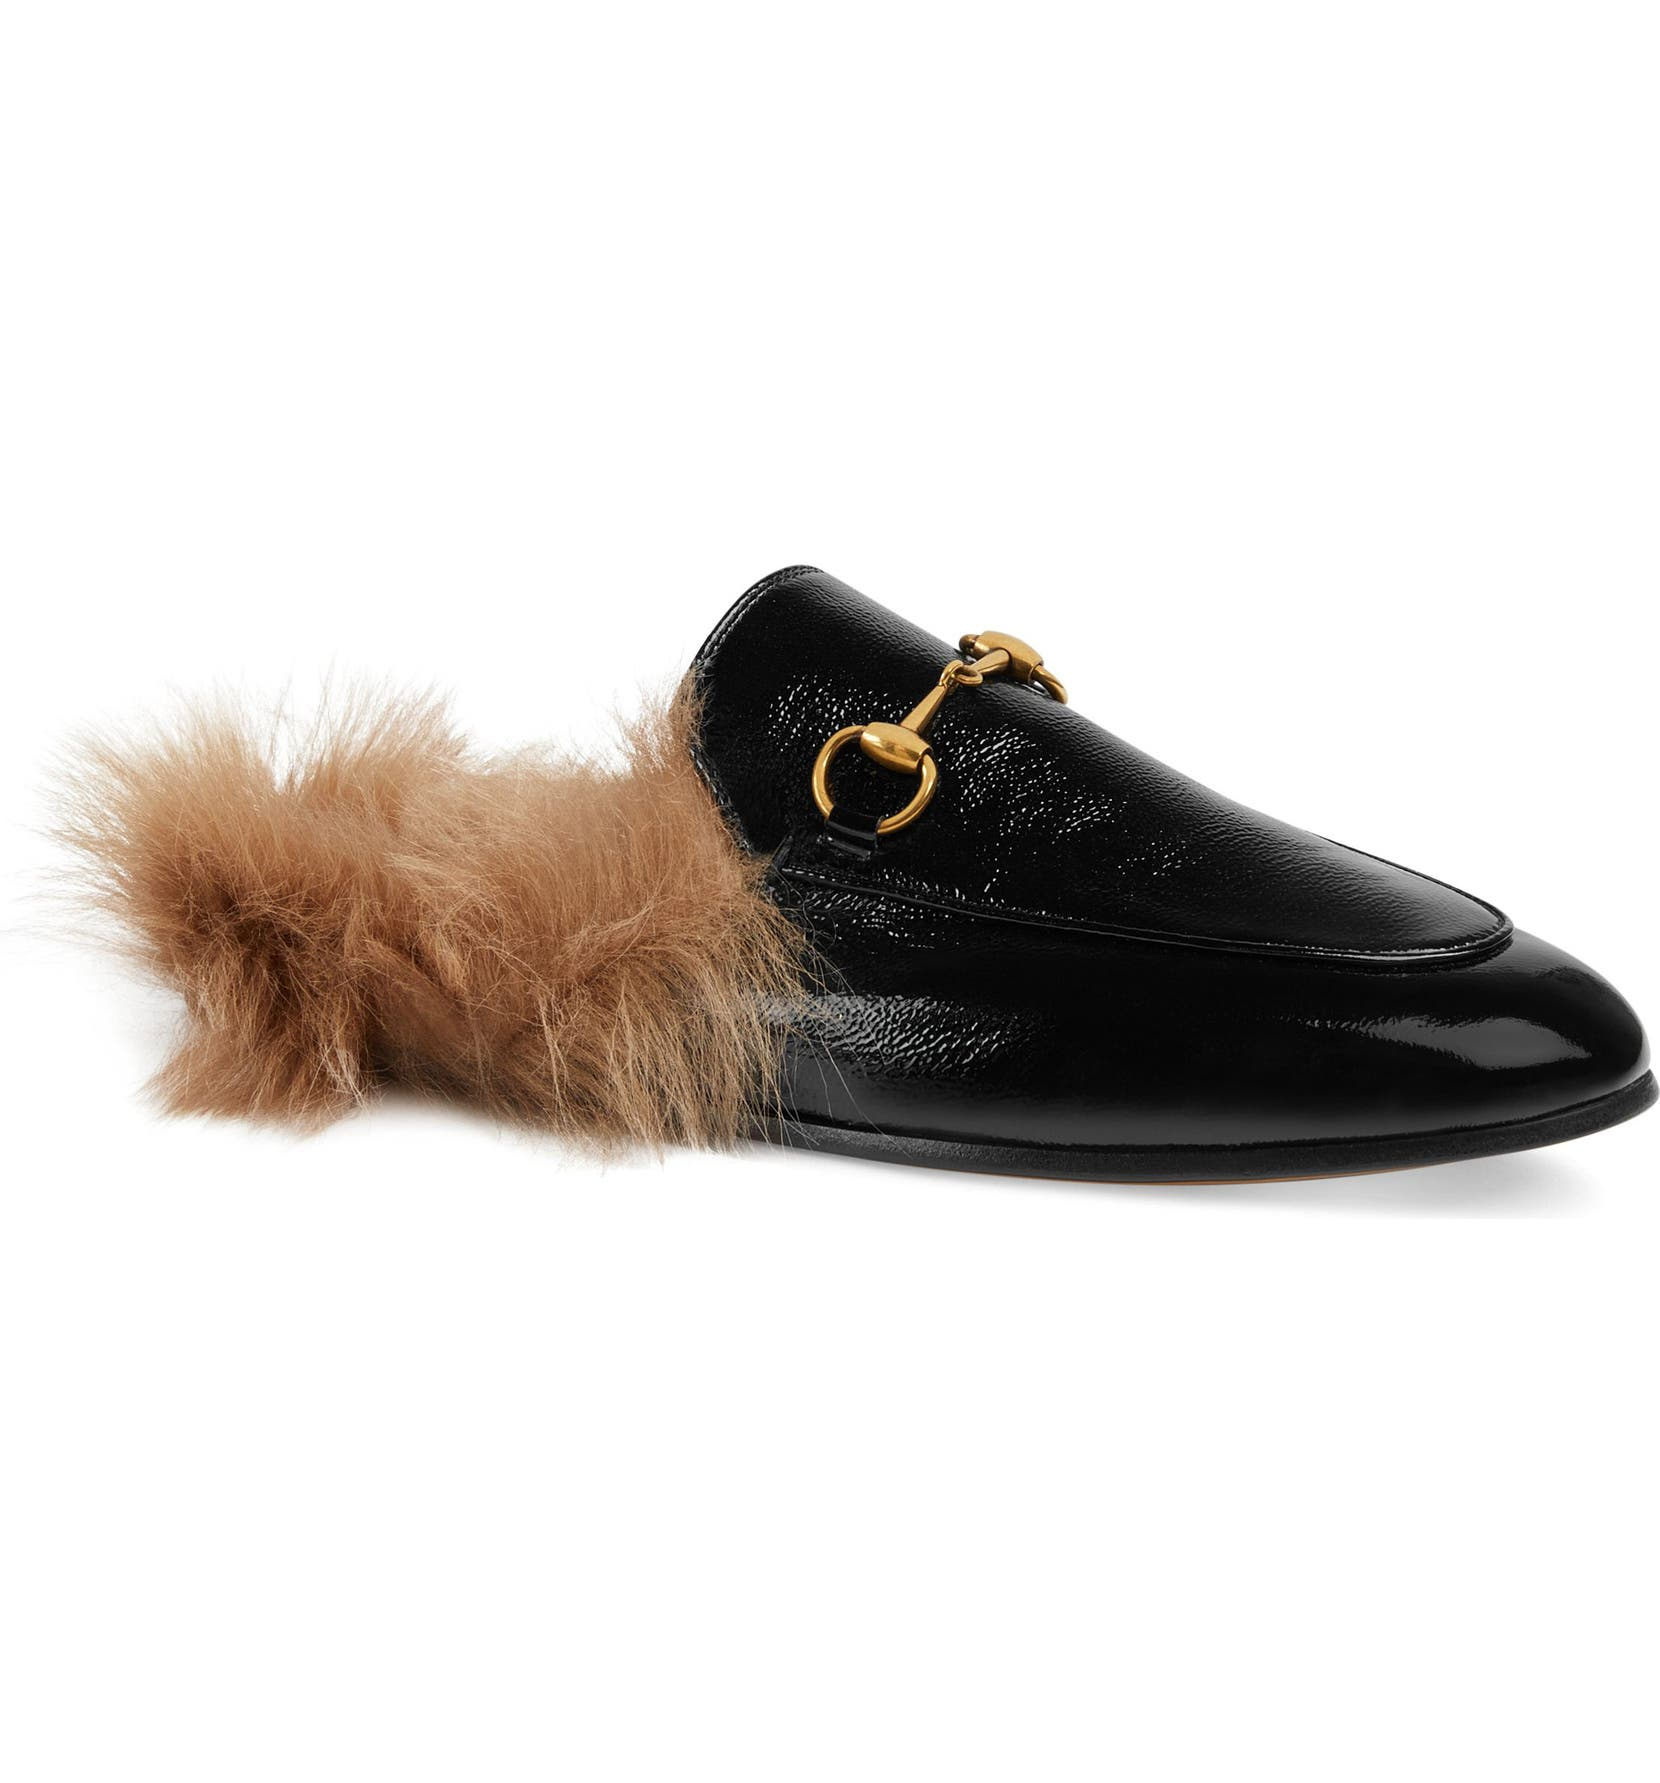 85c420266 Gucci Princetown Genuine Shearling Loafer Mule (Women)   Nordstrom